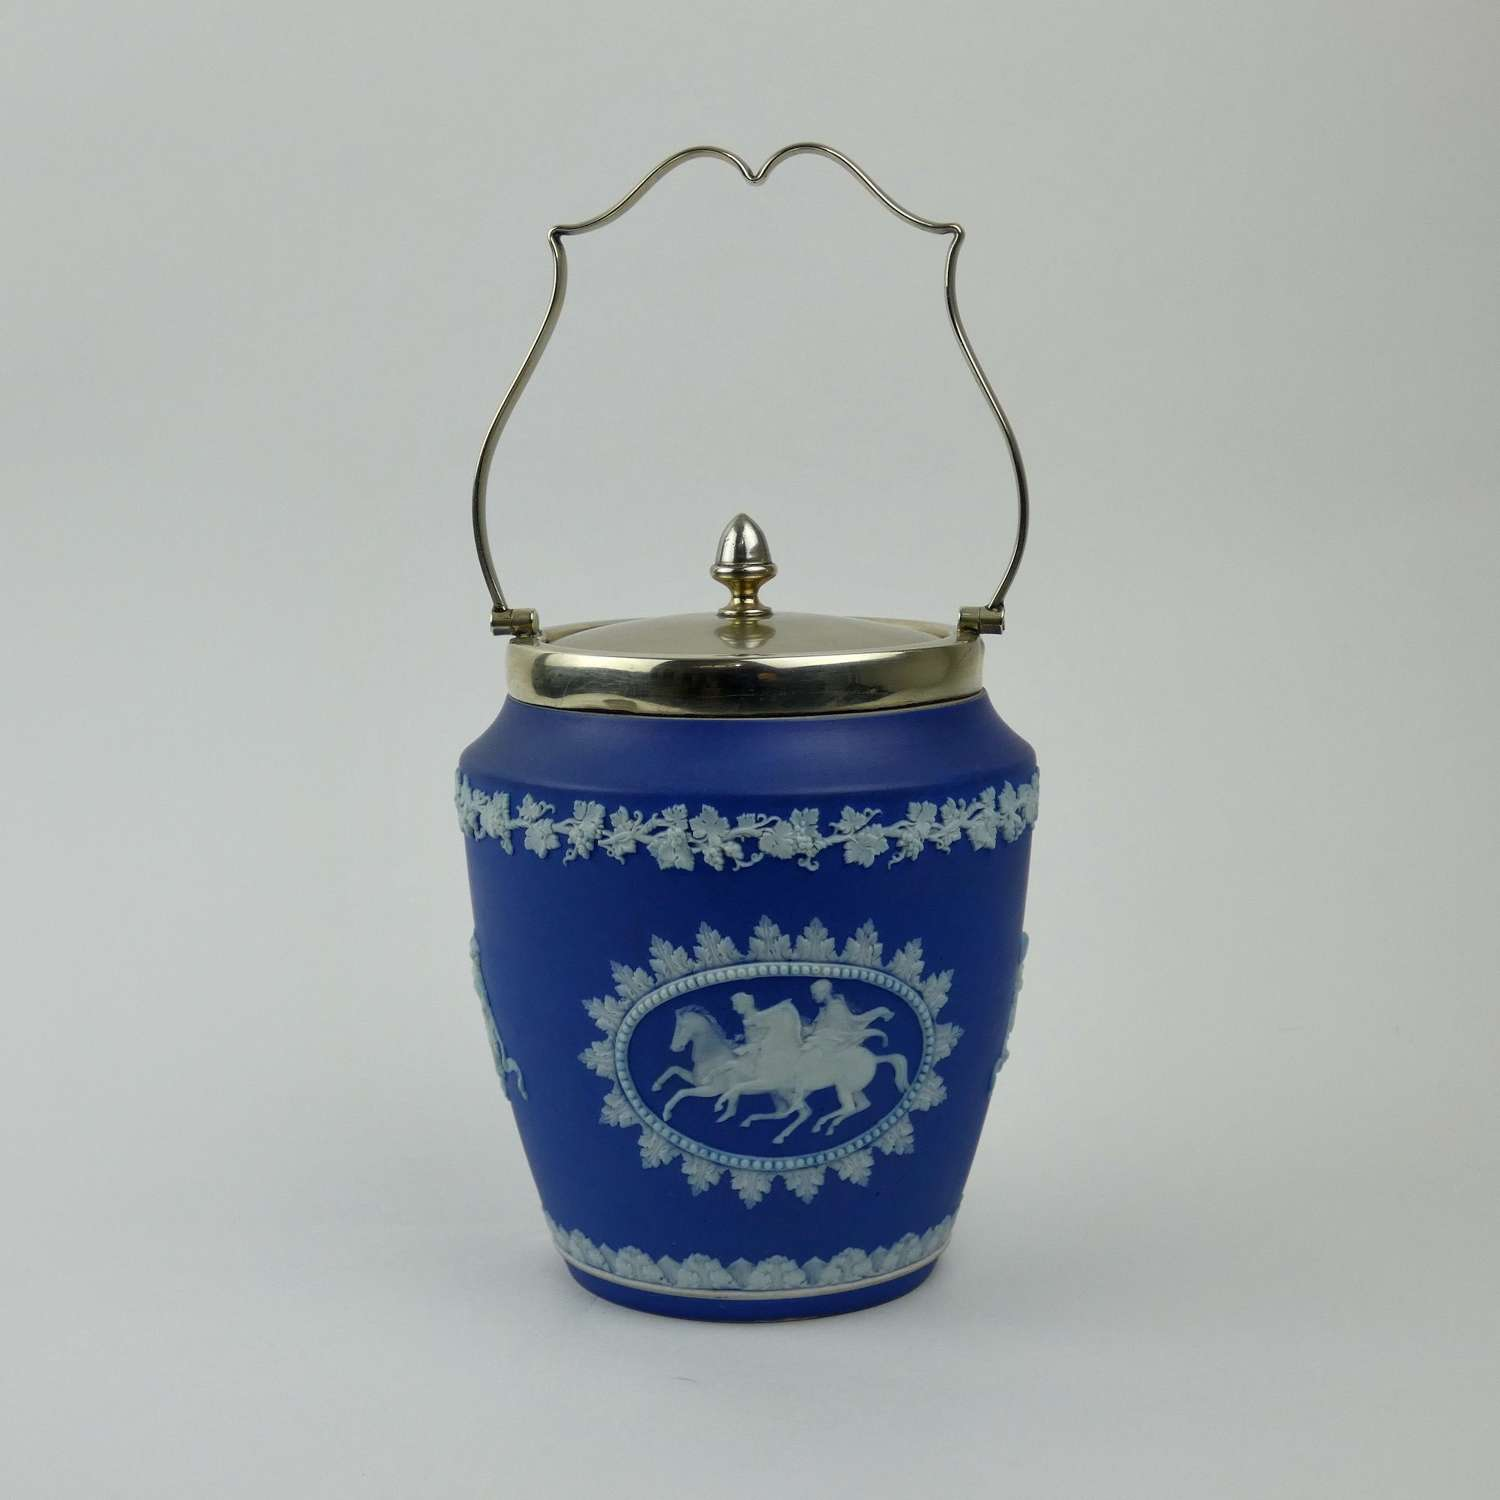 Unusual, Wedgwood biscuit barrel